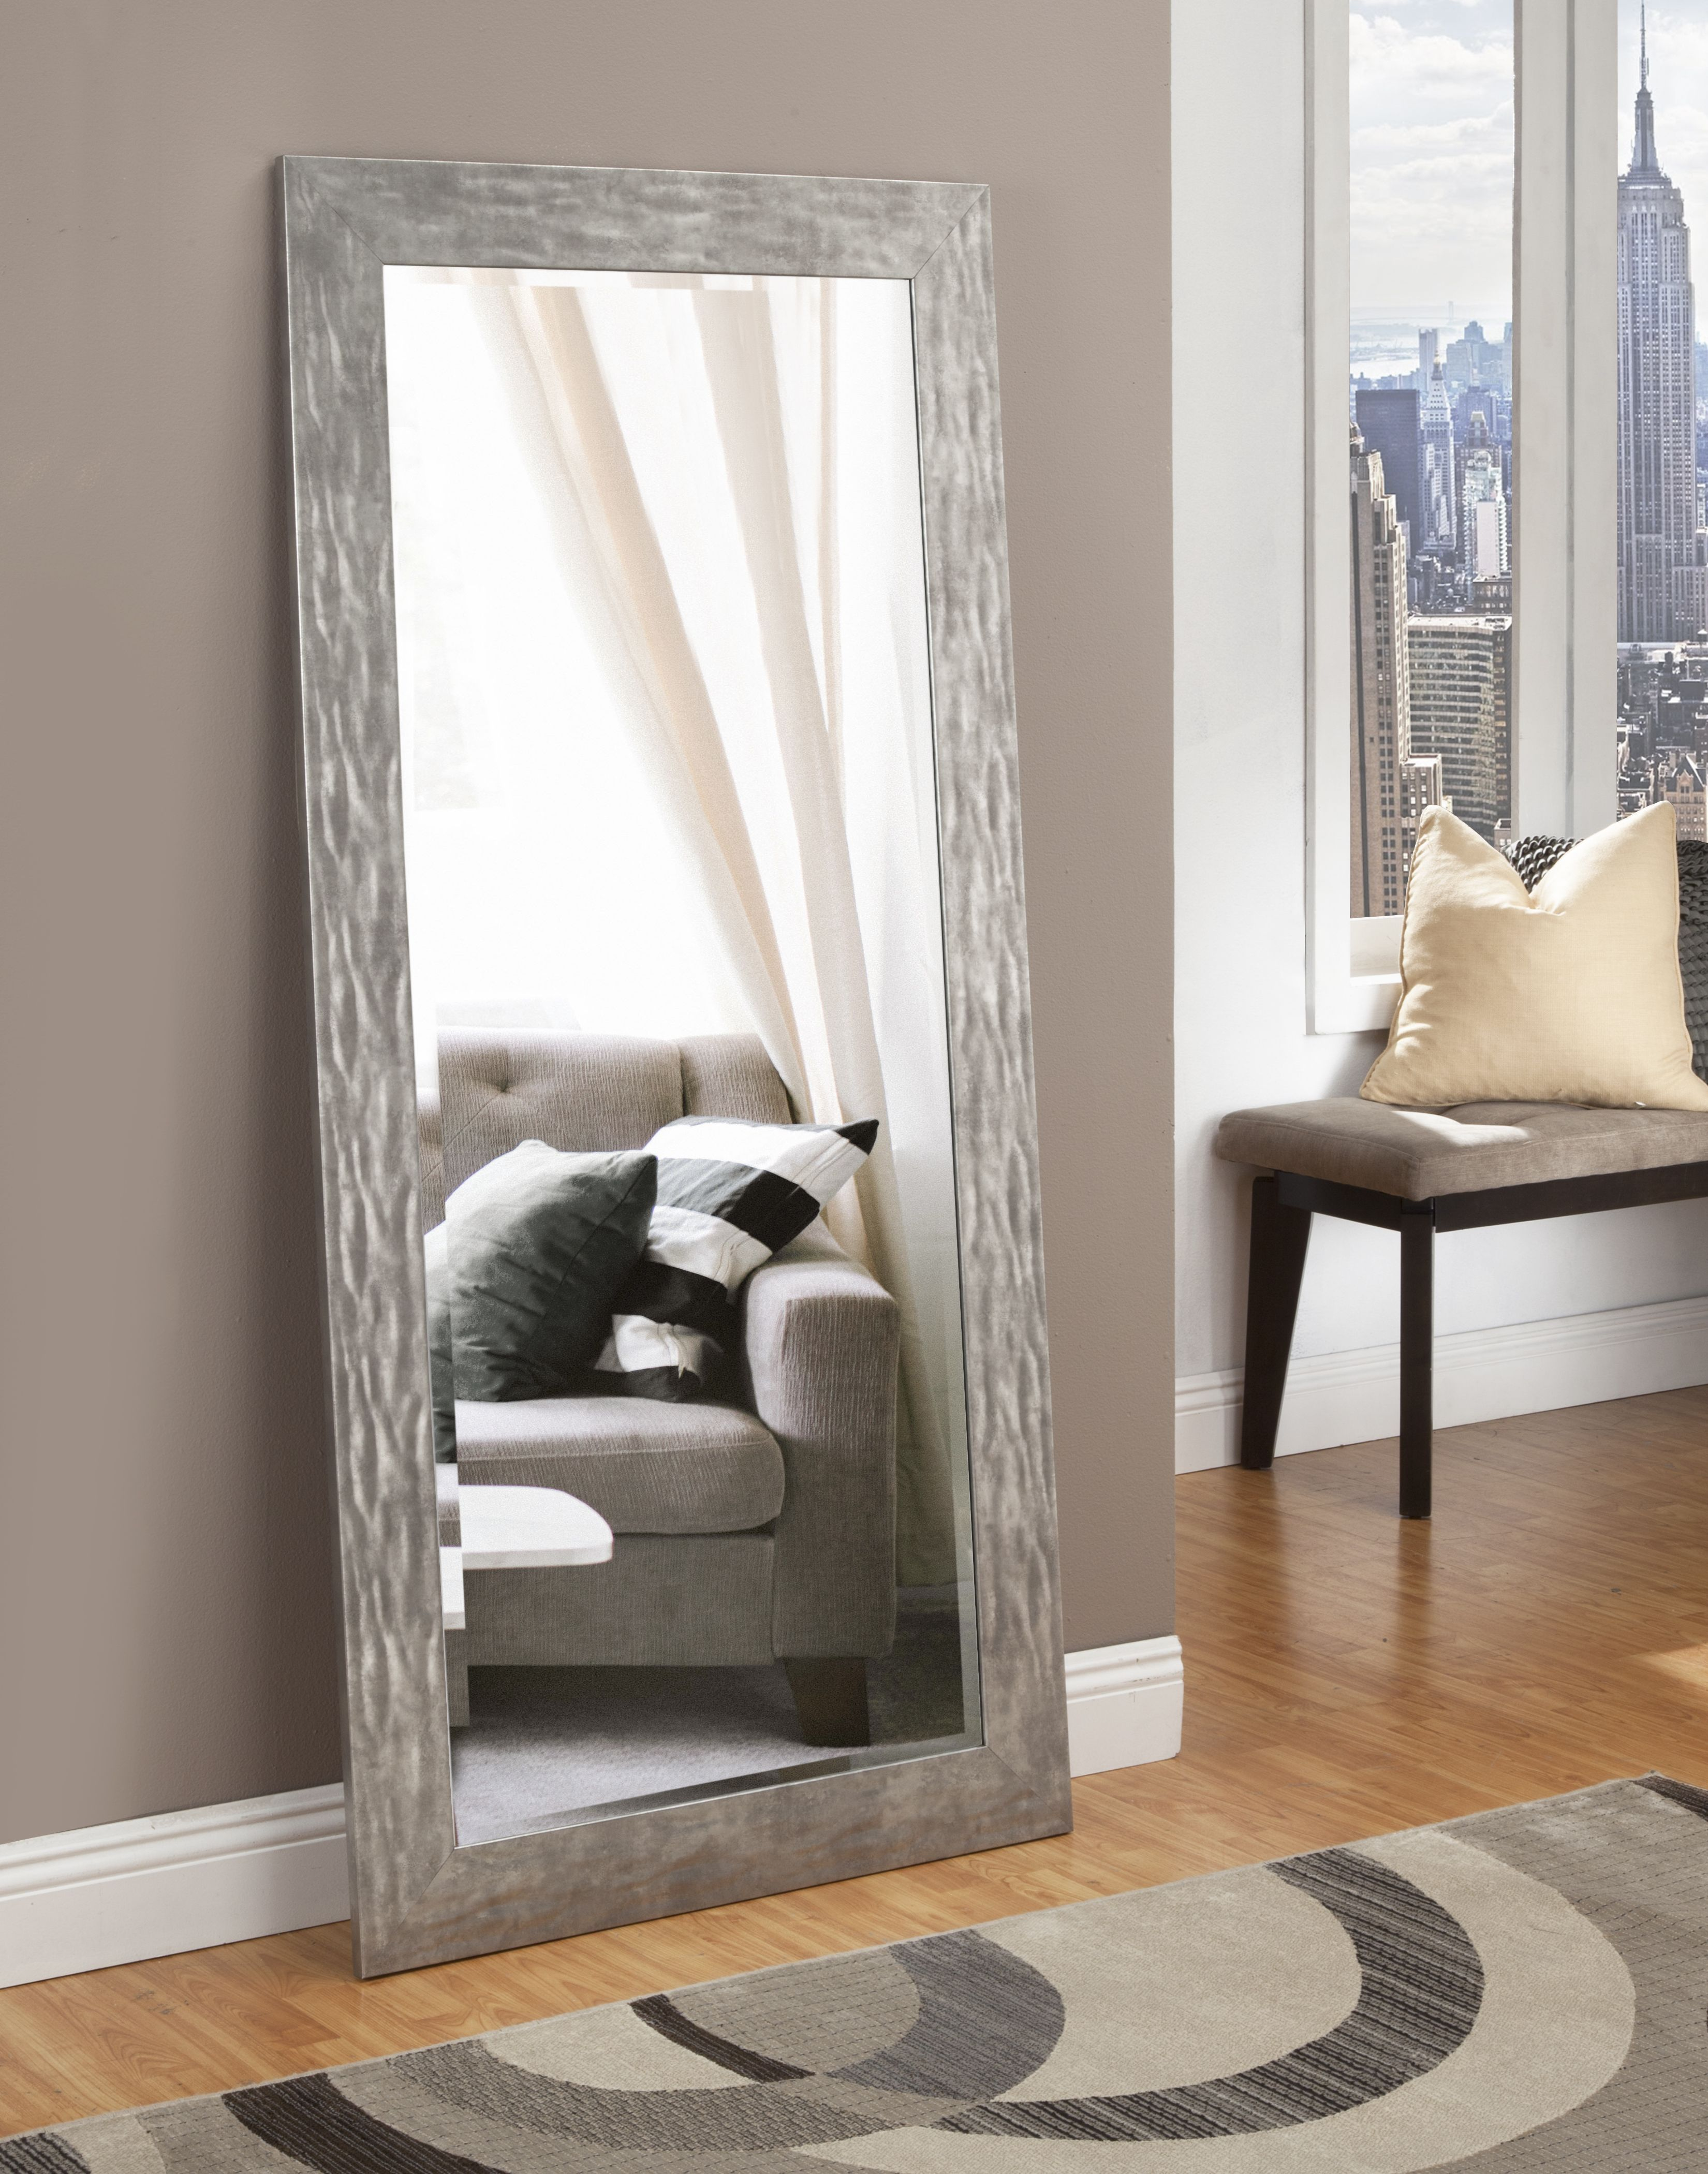 Buy Full Length Leaner Mirrors Available In Multiple Finishes By